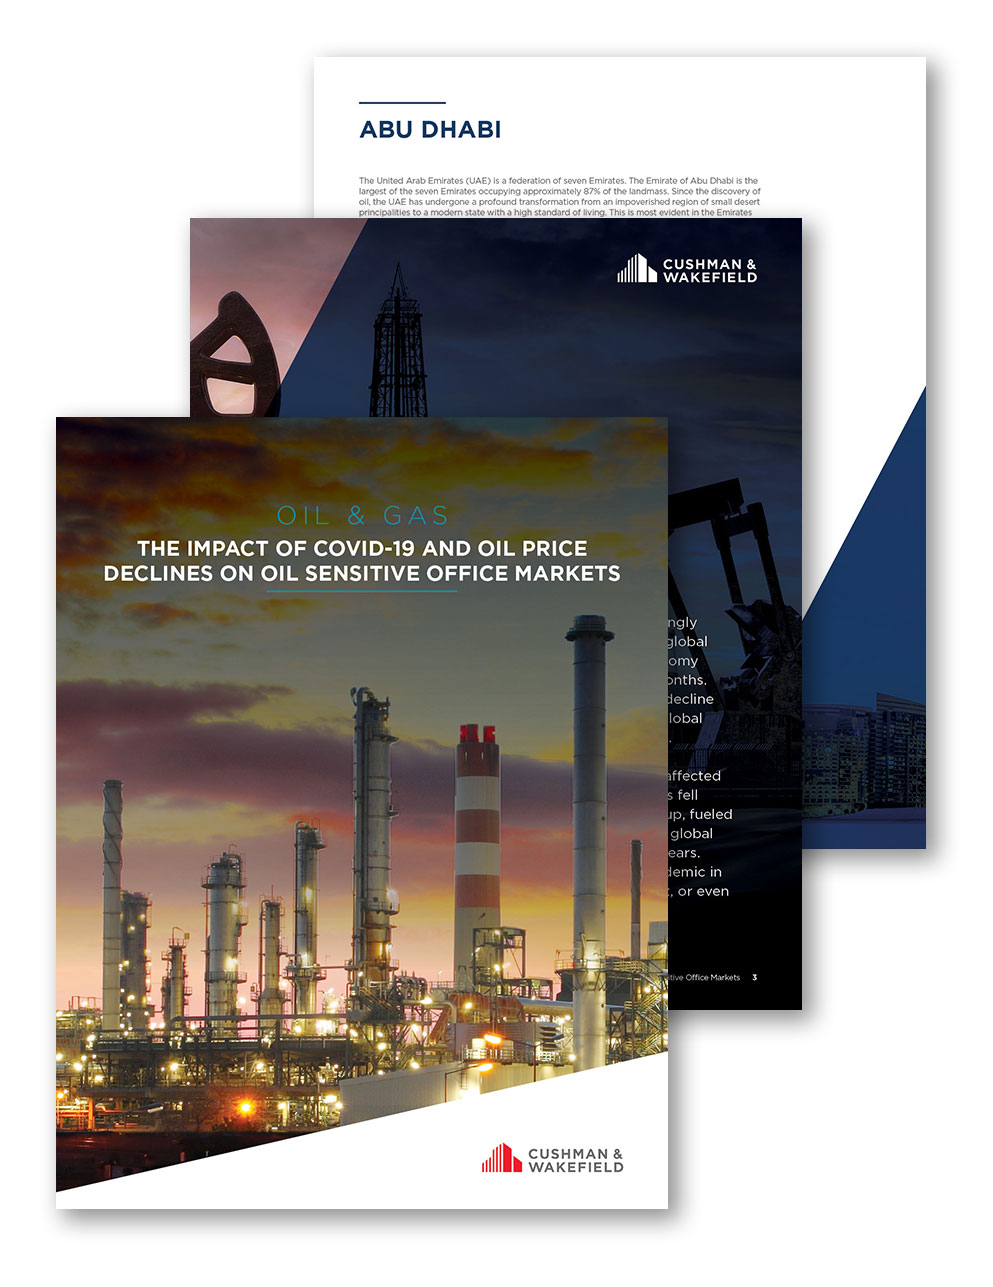 Oil & Gas 2020 Report (image)